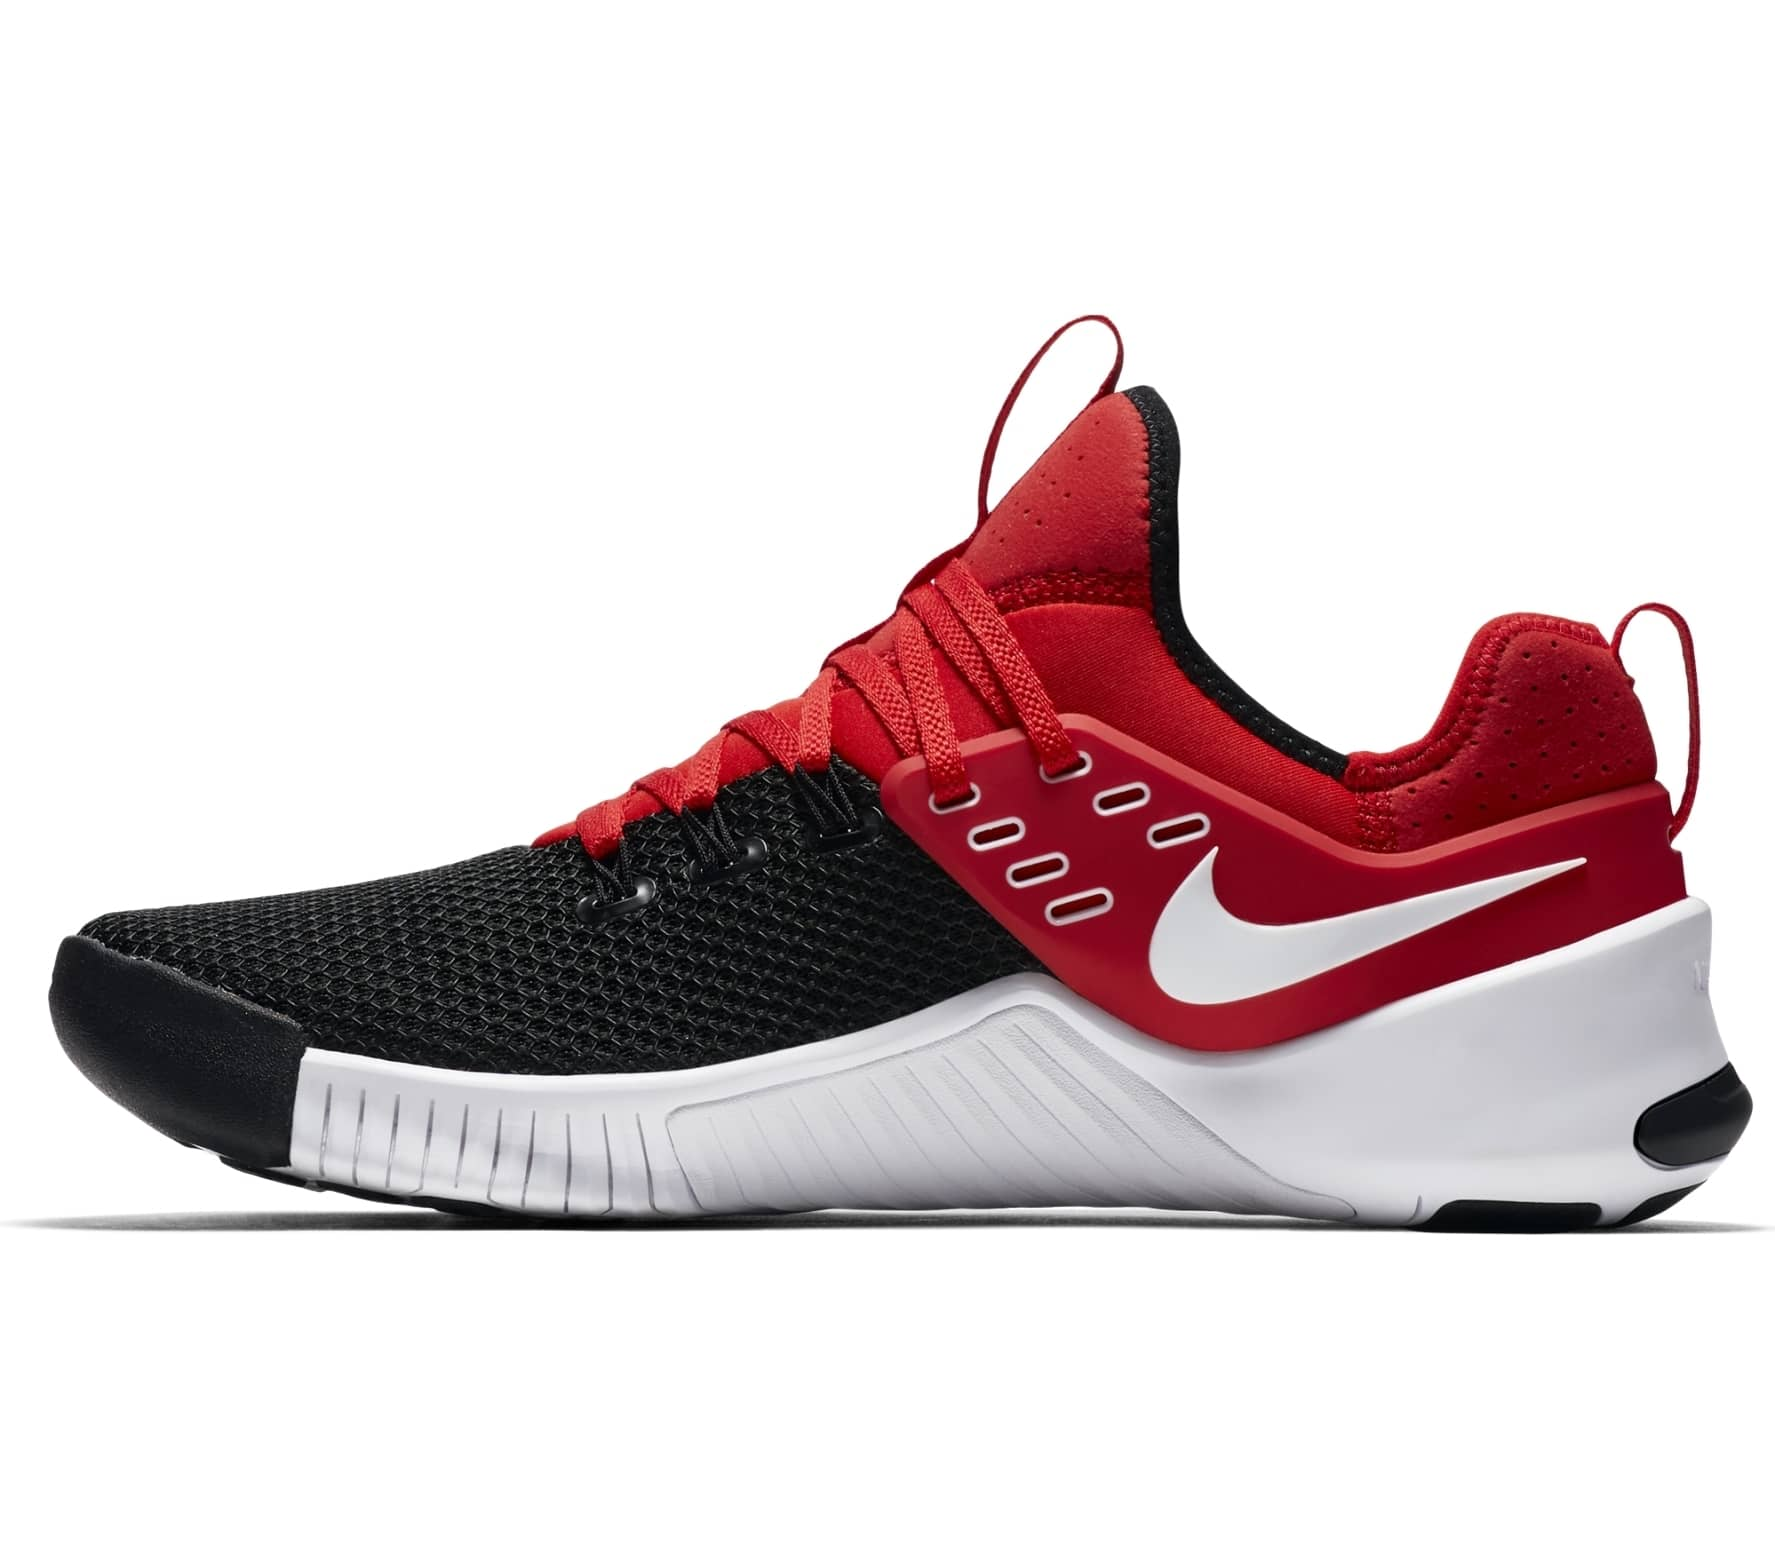 Best All Rounder Nike Shoes